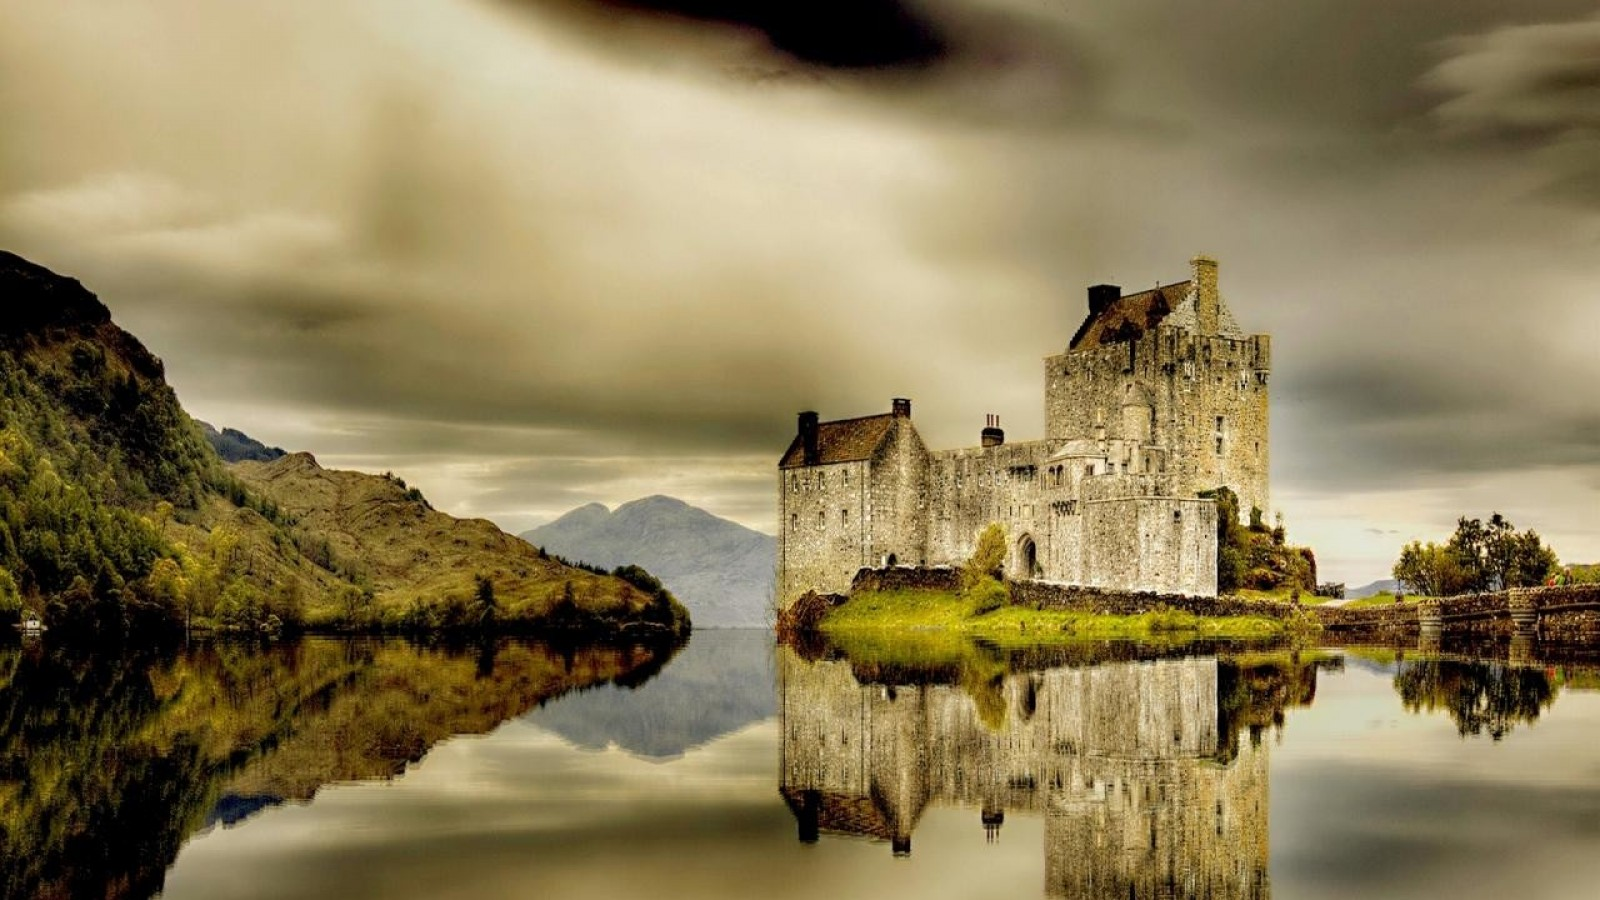 Hd Wallpapers High Definition: Scotland Wallpapers